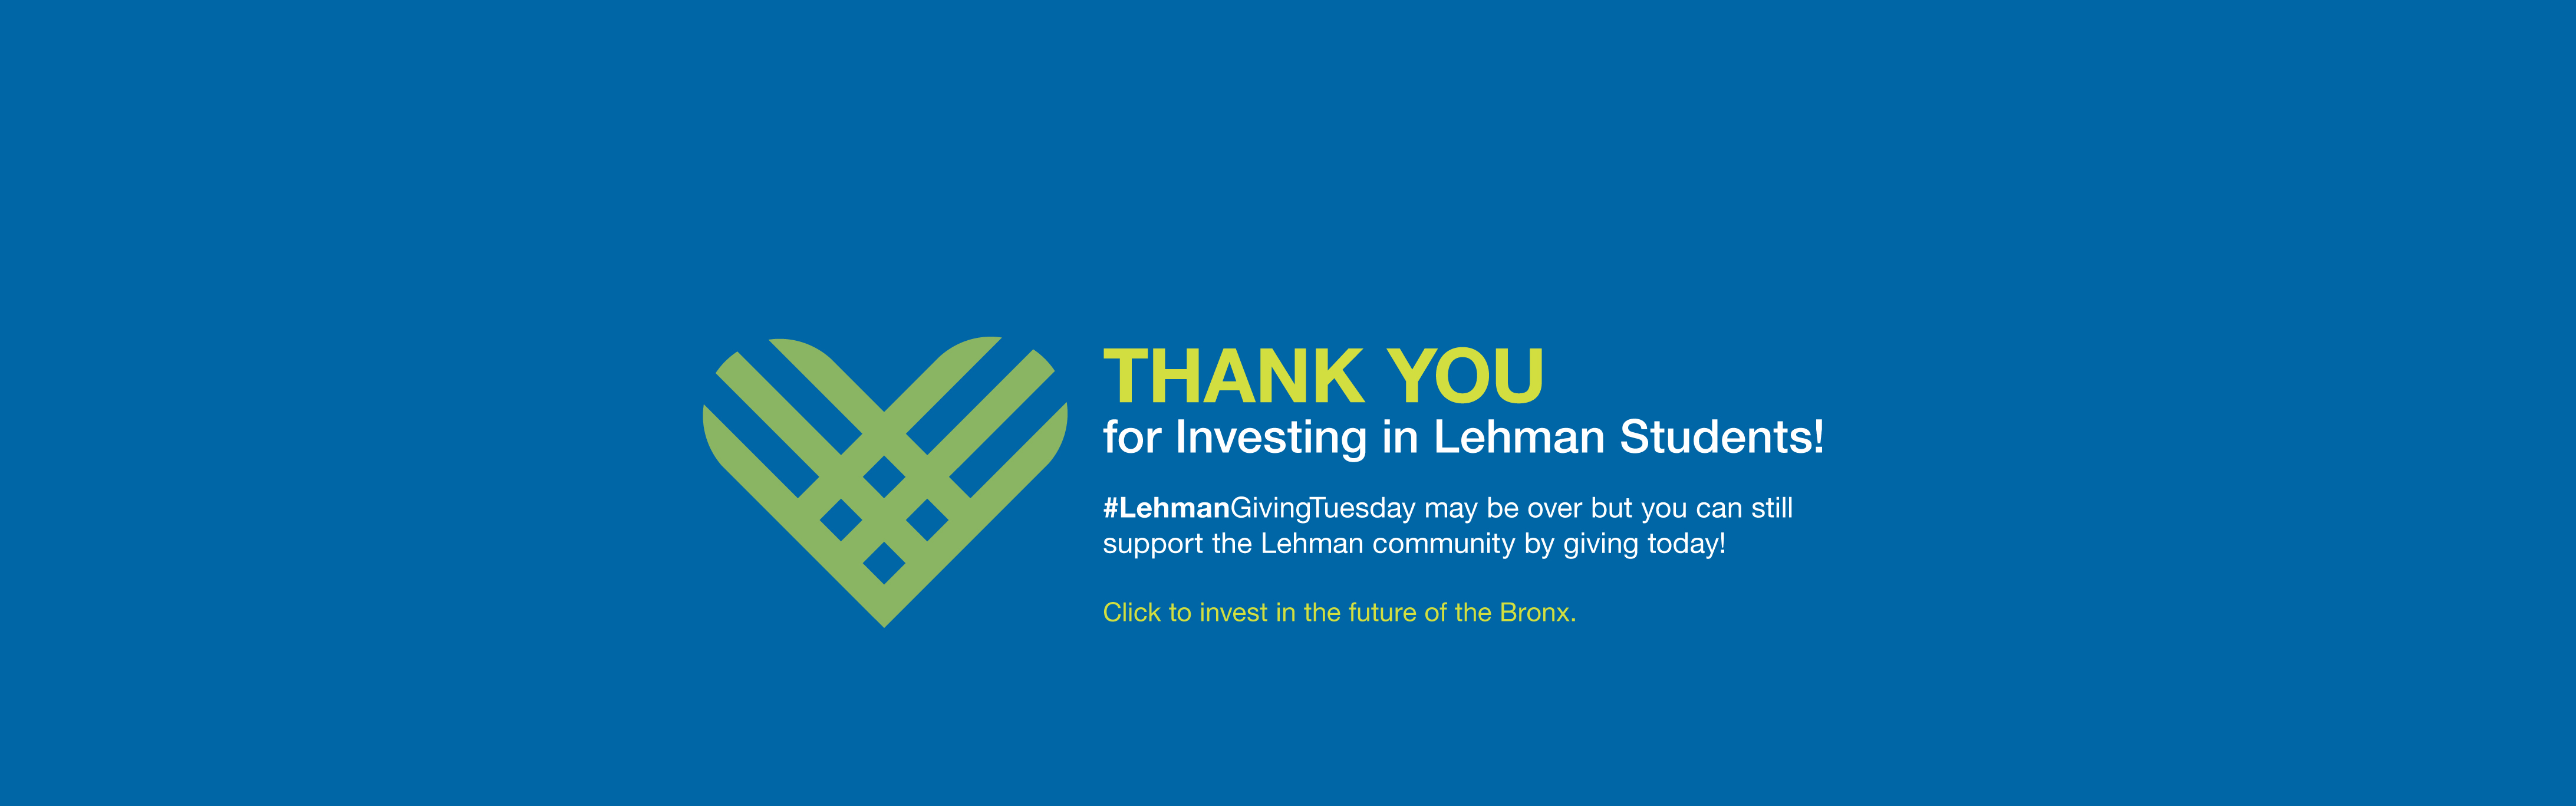 Giving Tuesday Thank You in Investing Lehman Students